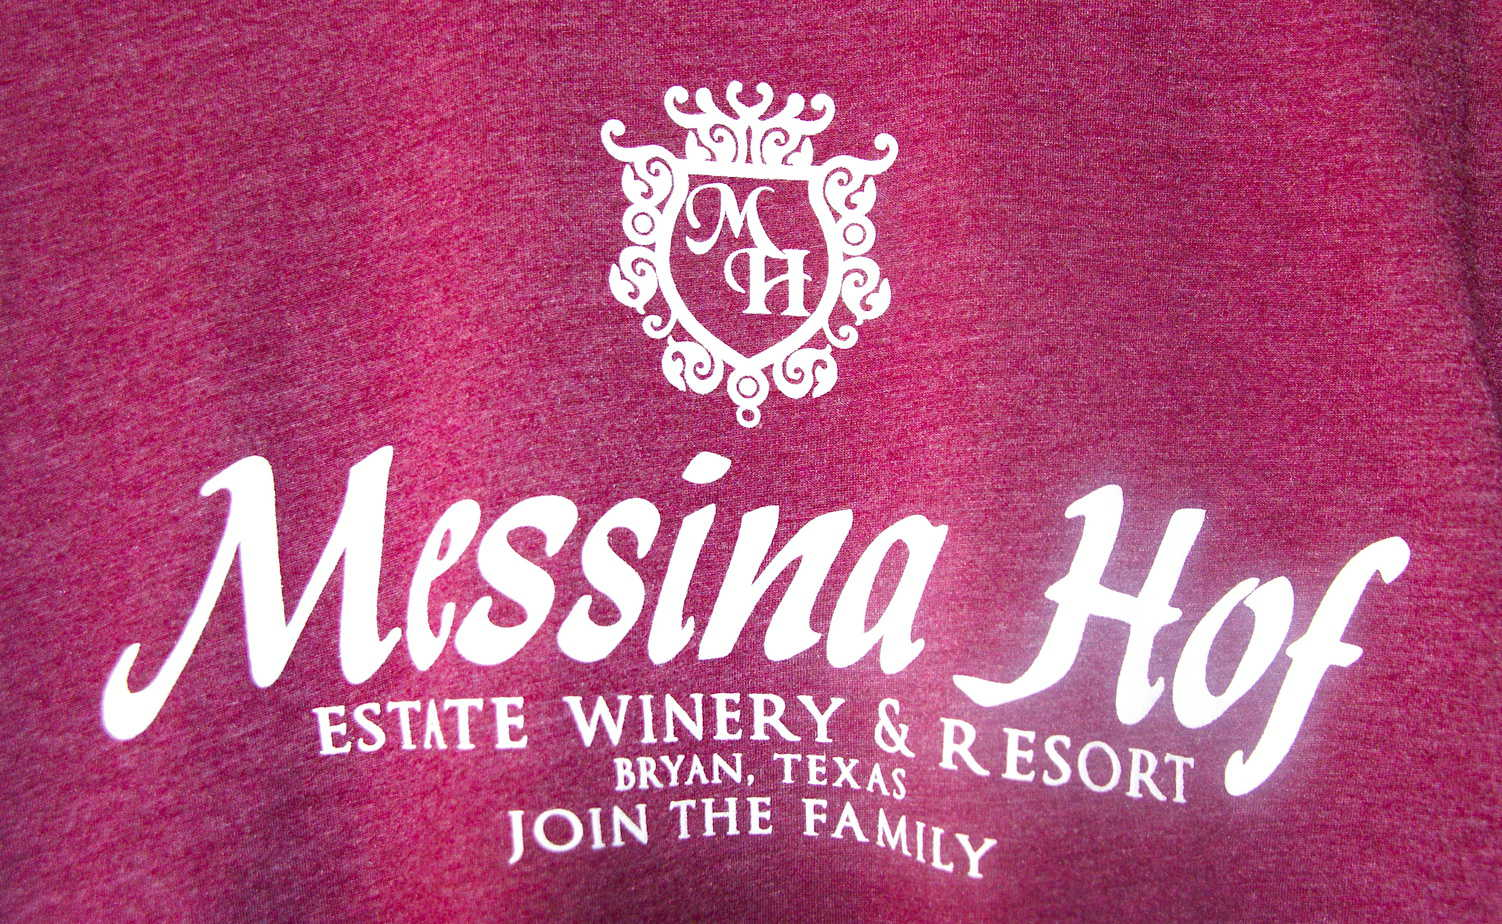 Messina Hof join the family